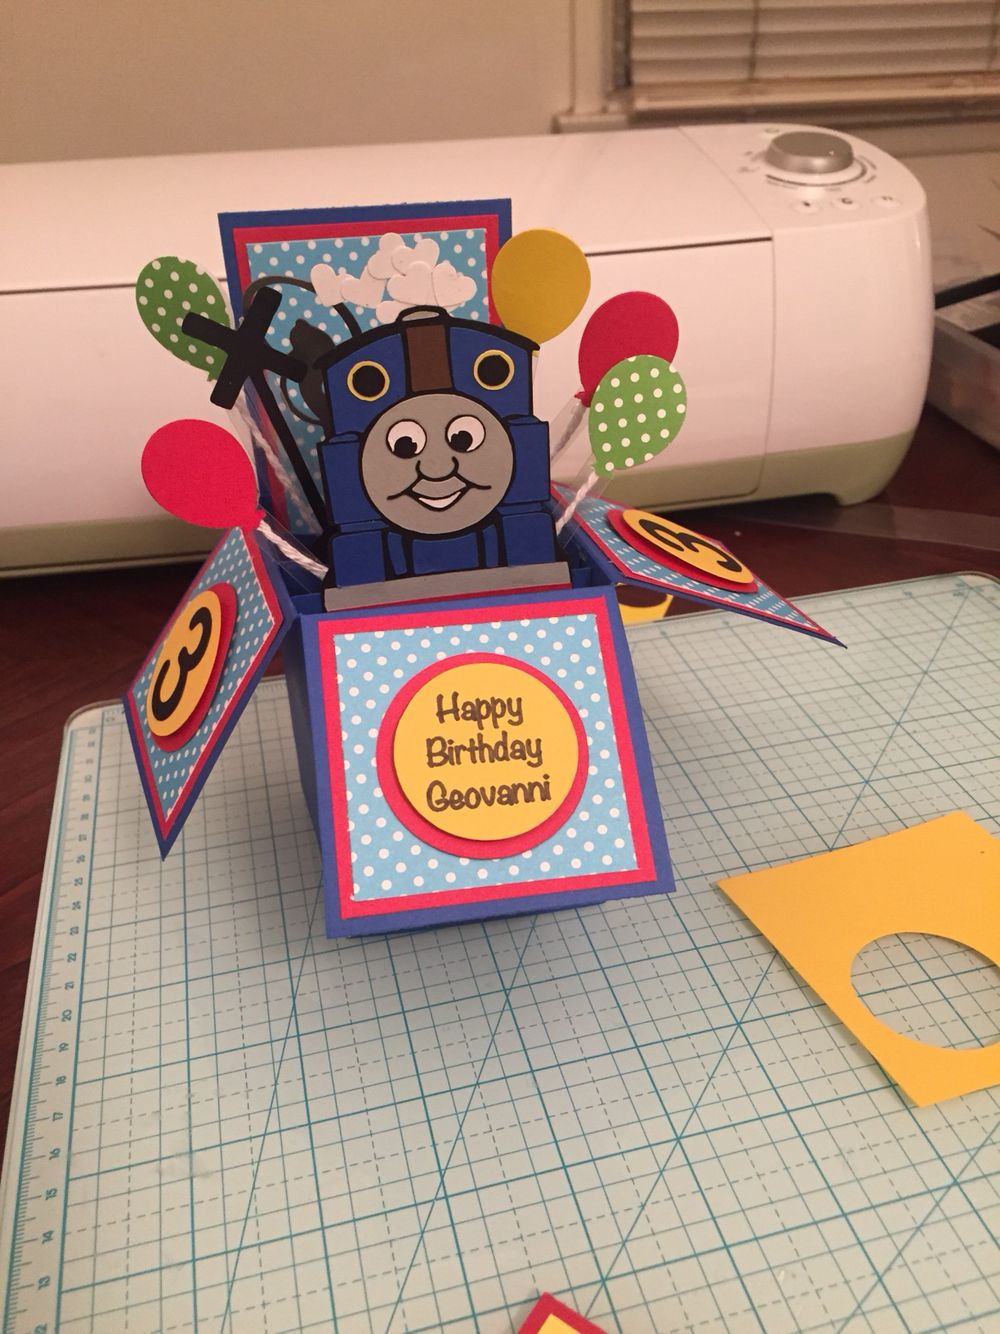 Thomas the train birthday pop up card, cricut, Kids